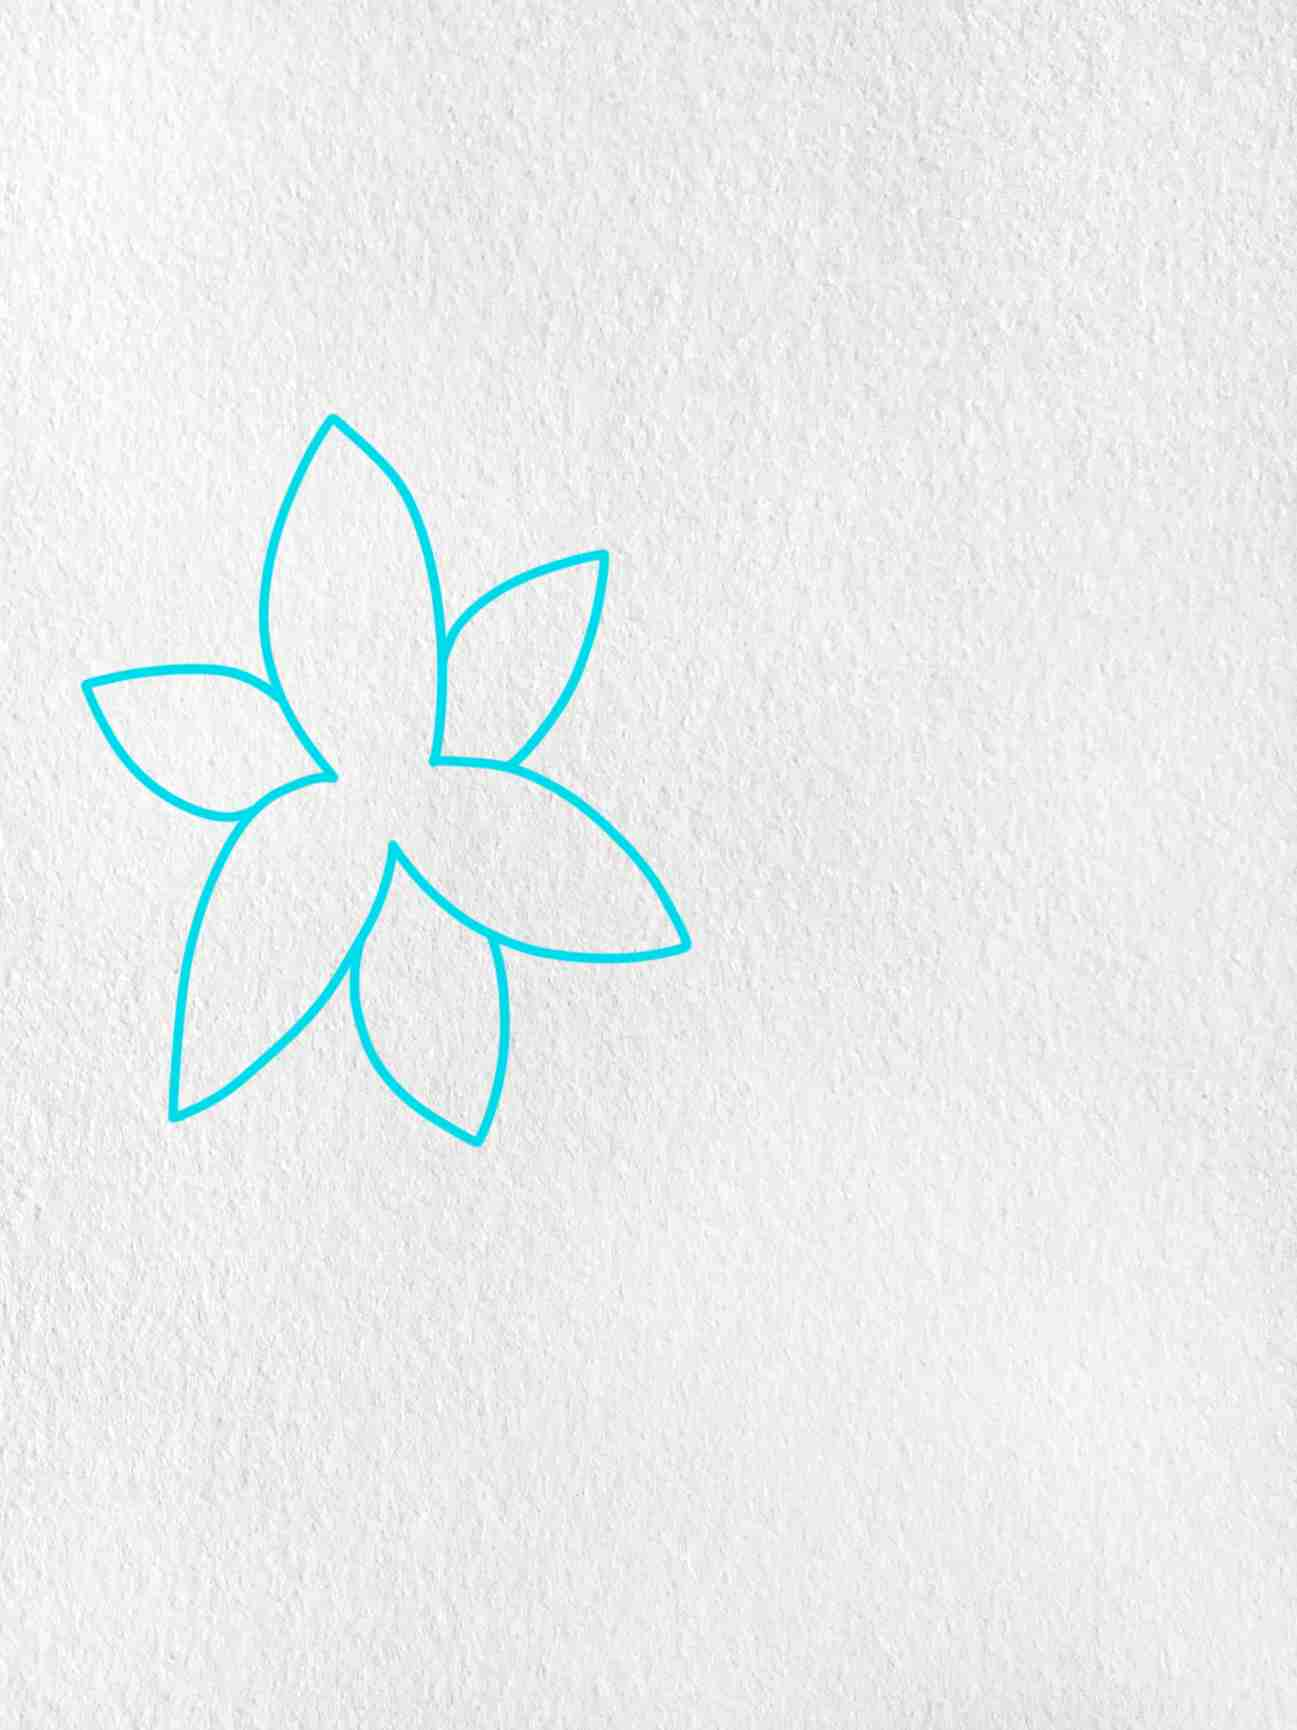 How To Draw A Lily: Step 1